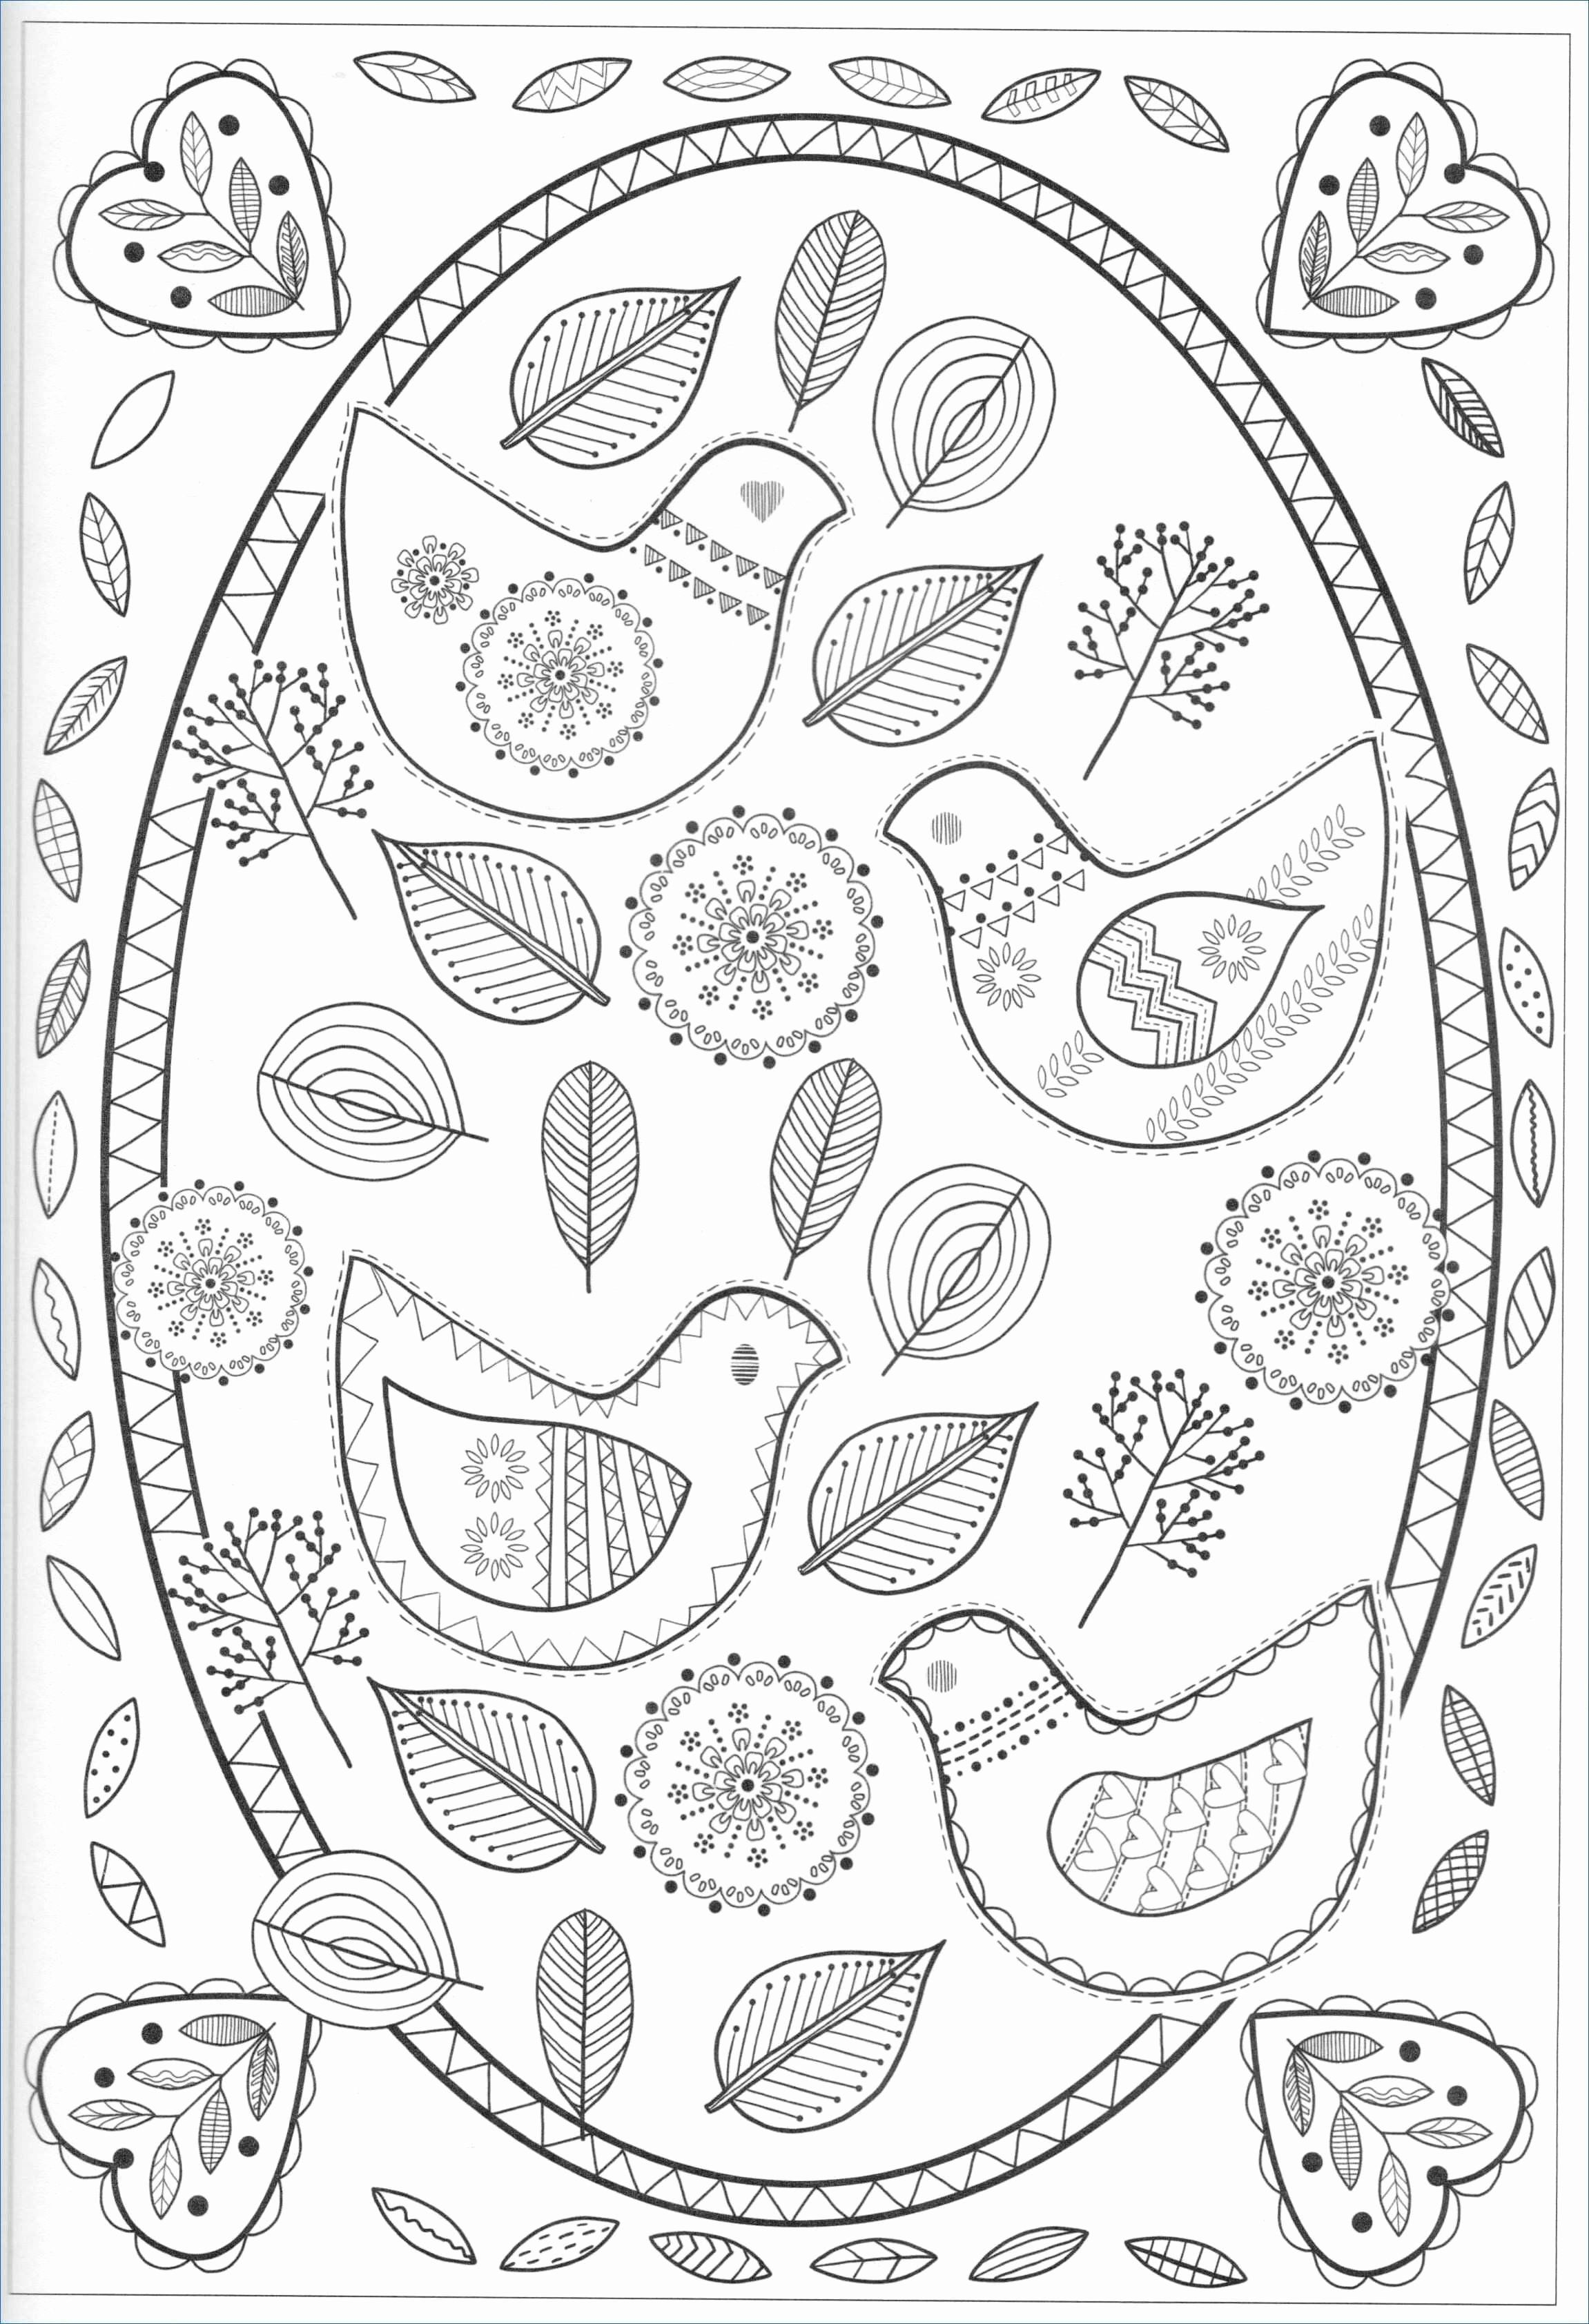 Animal Coloring Relaxation Inspirational Fresh Coloring Book Games In 2020 Love Coloring Pages Bird Coloring Pages Designs Coloring Books